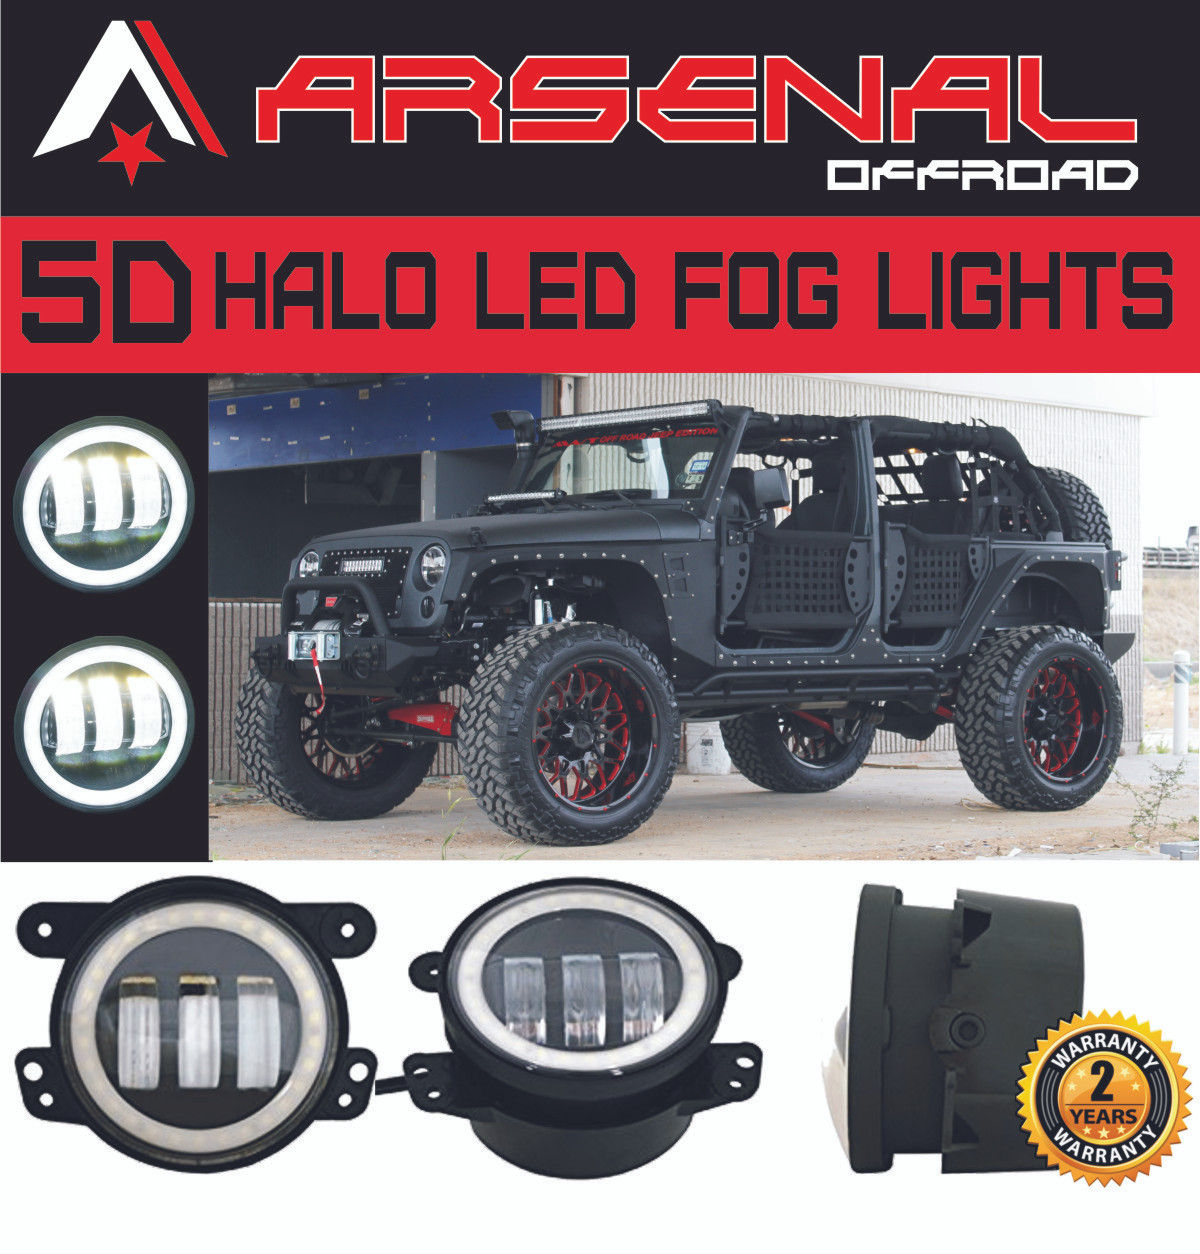 1 4 inch 60w cree led fog lights w white halo ring drl for jeep wrangler 97 15 jk tj lj off road fog lamps [ 1200 x 1254 Pixel ]